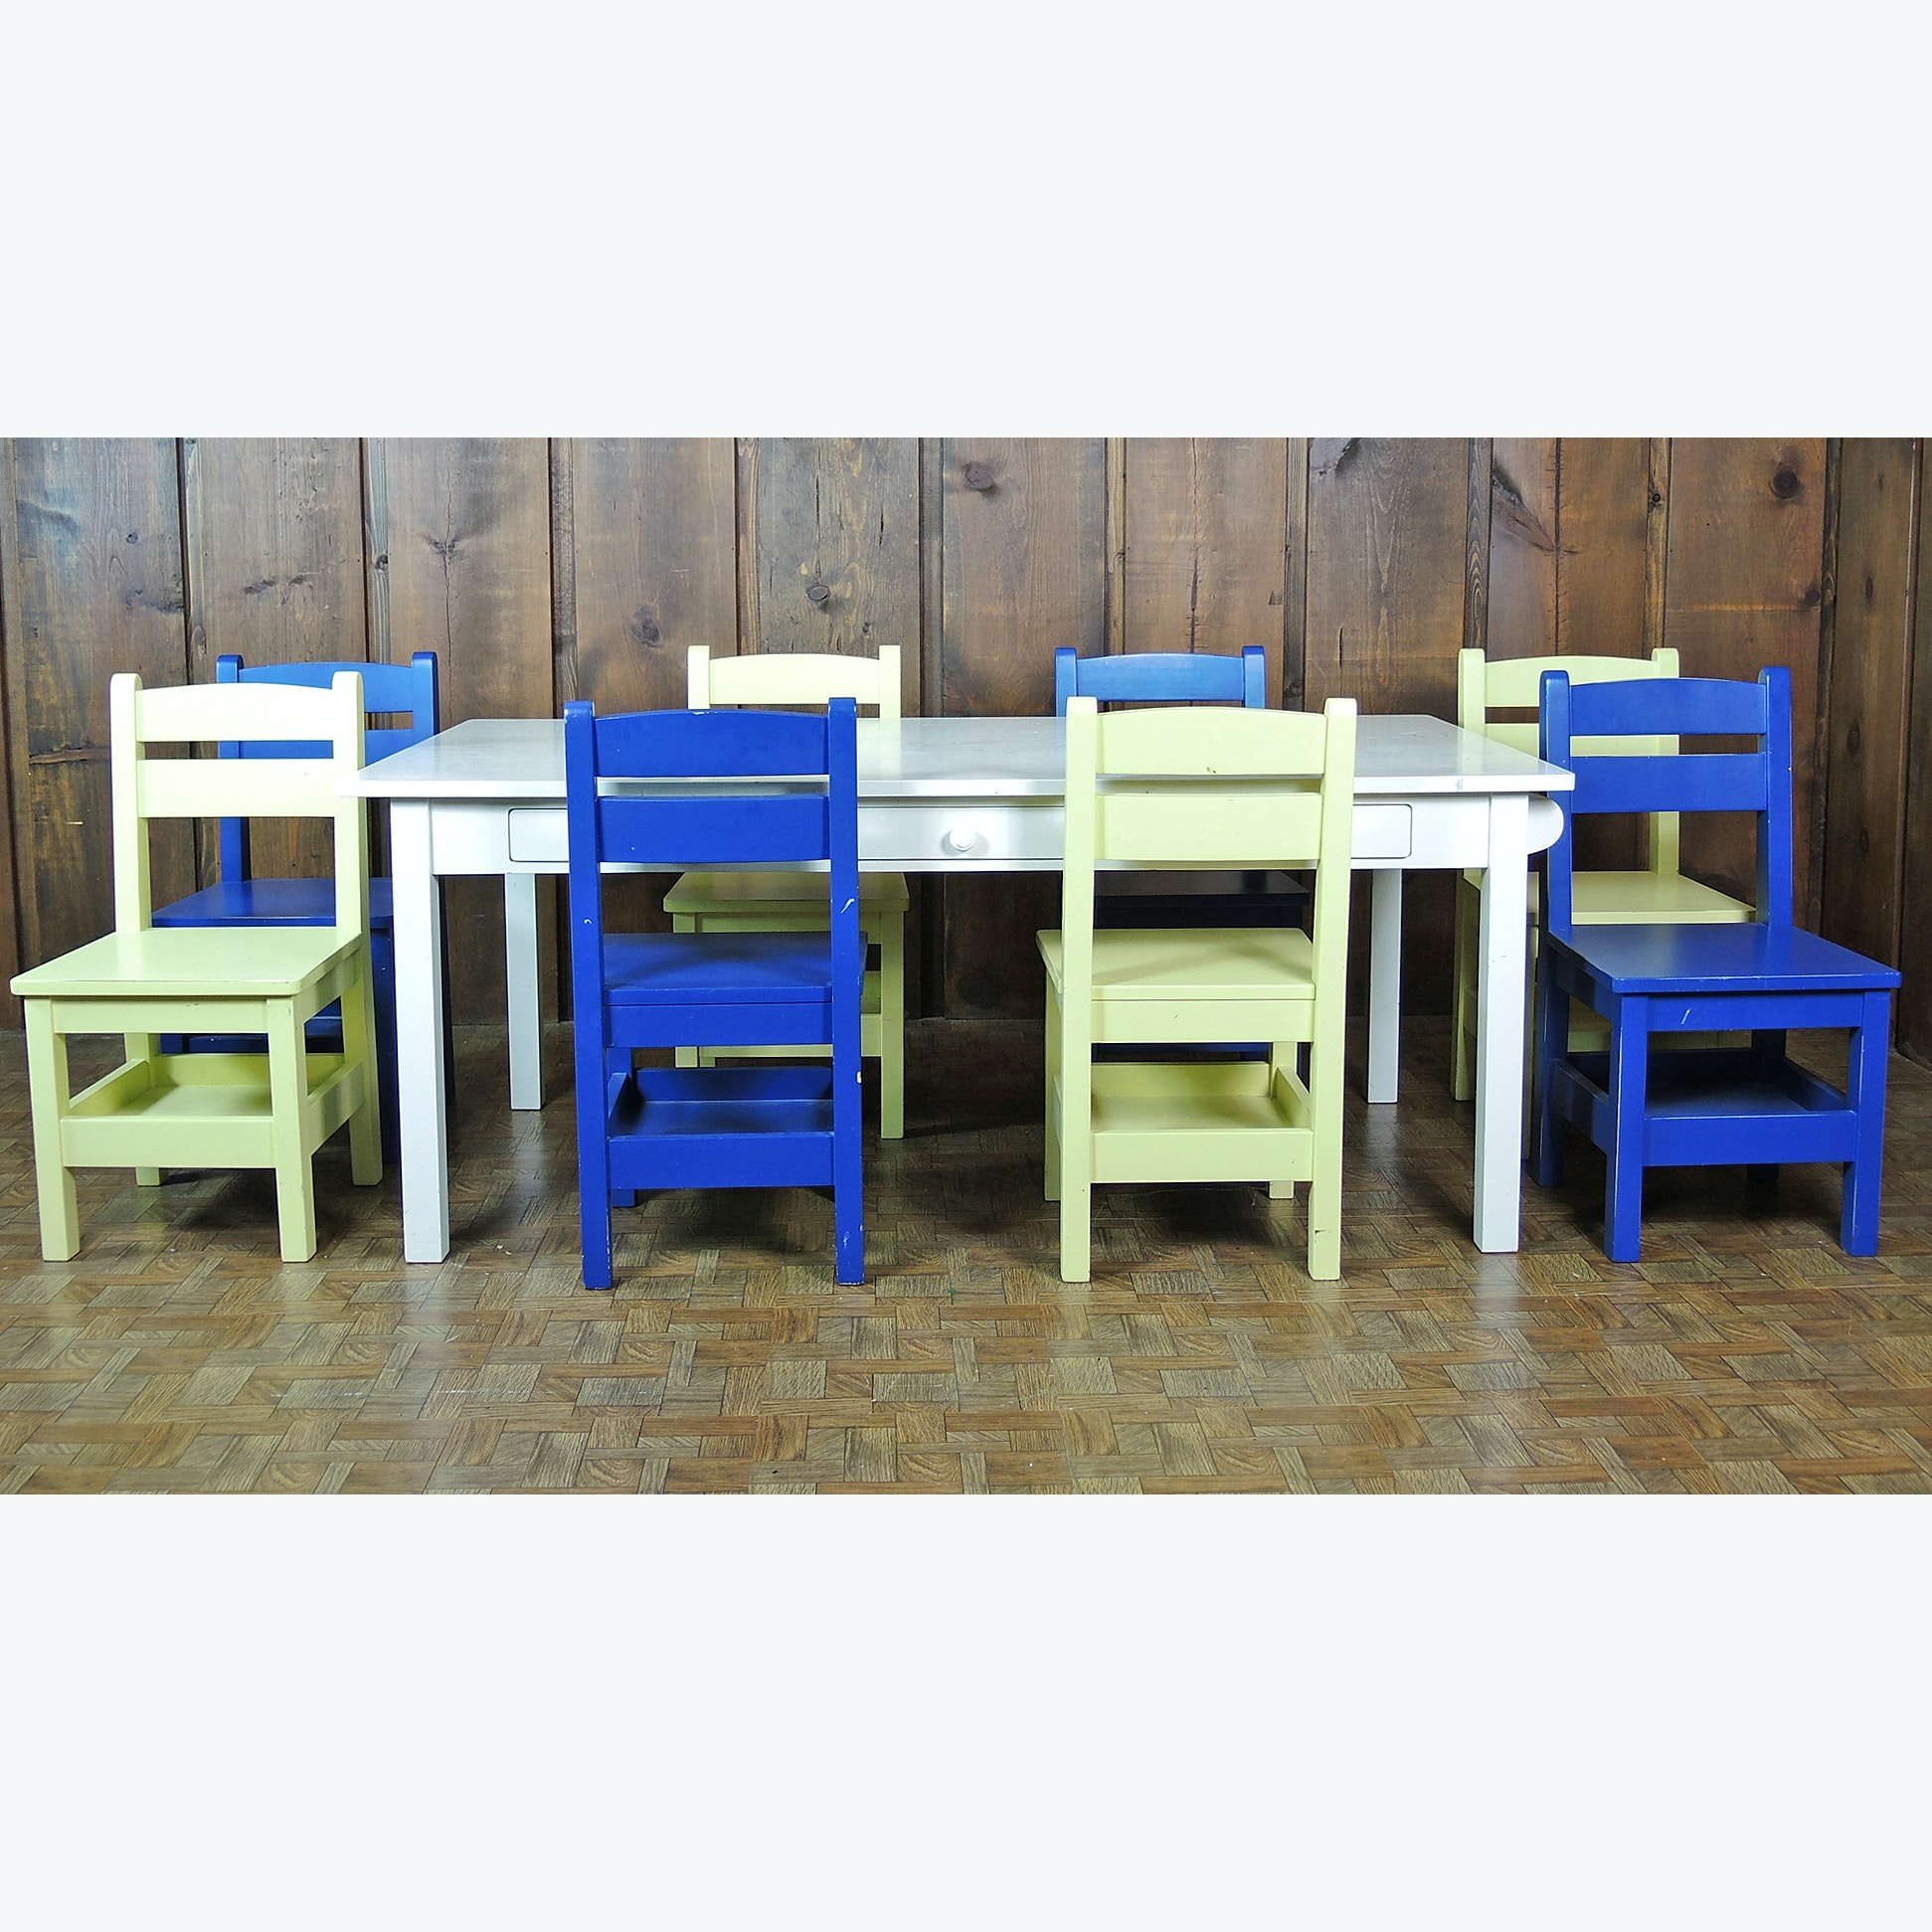 Children's Art Table and Chairs from The Land of Nod